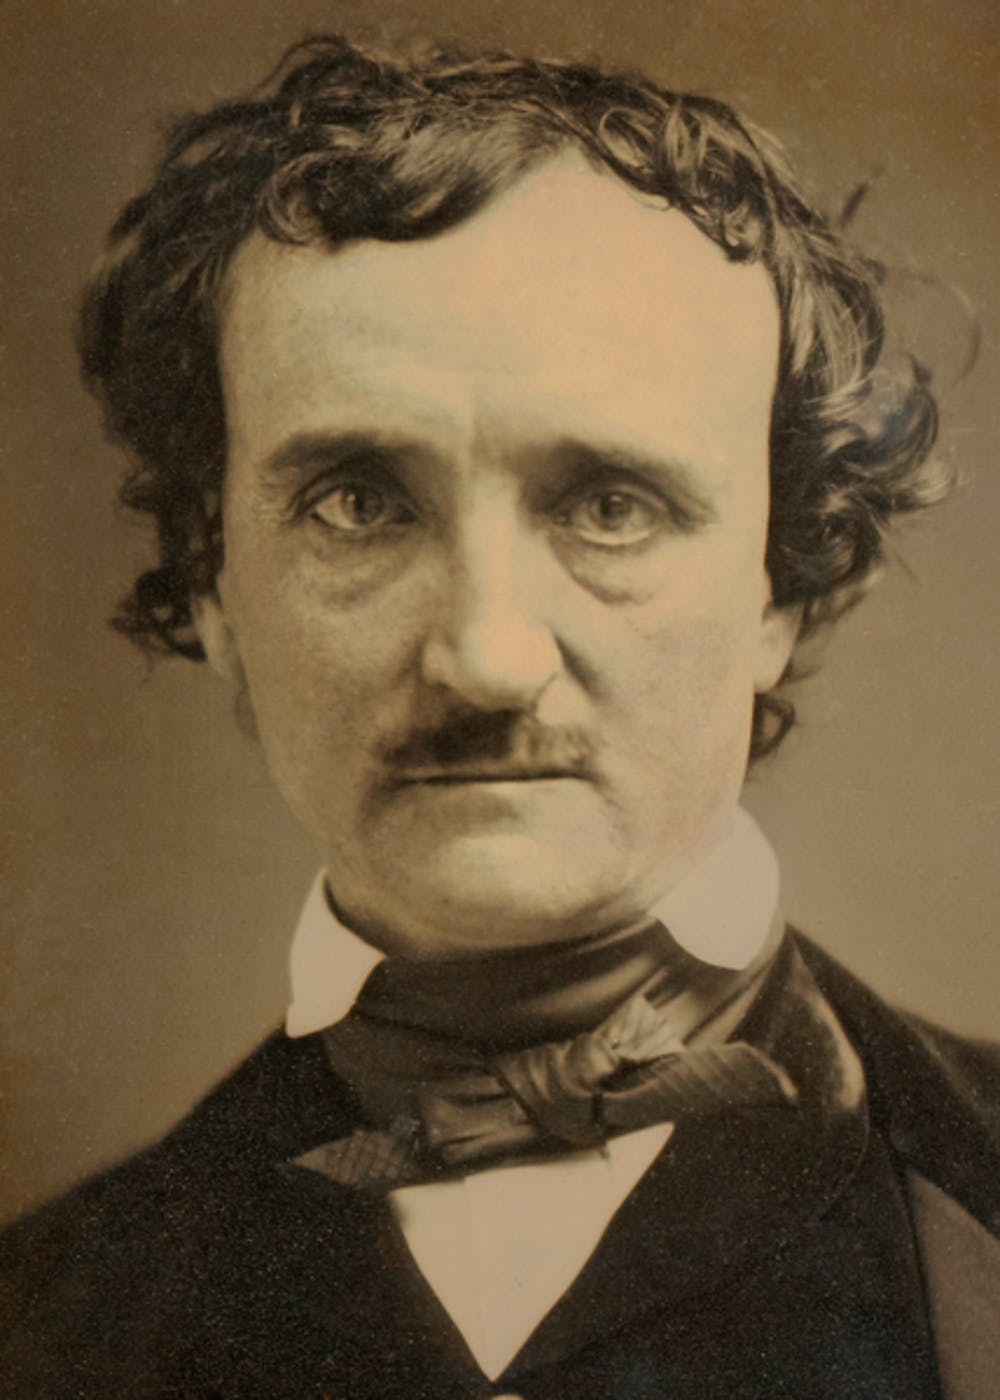 According to Edgar Allen Poe, knowing something is wrong can make it irresistible | Image credit: Wikimedia Commons